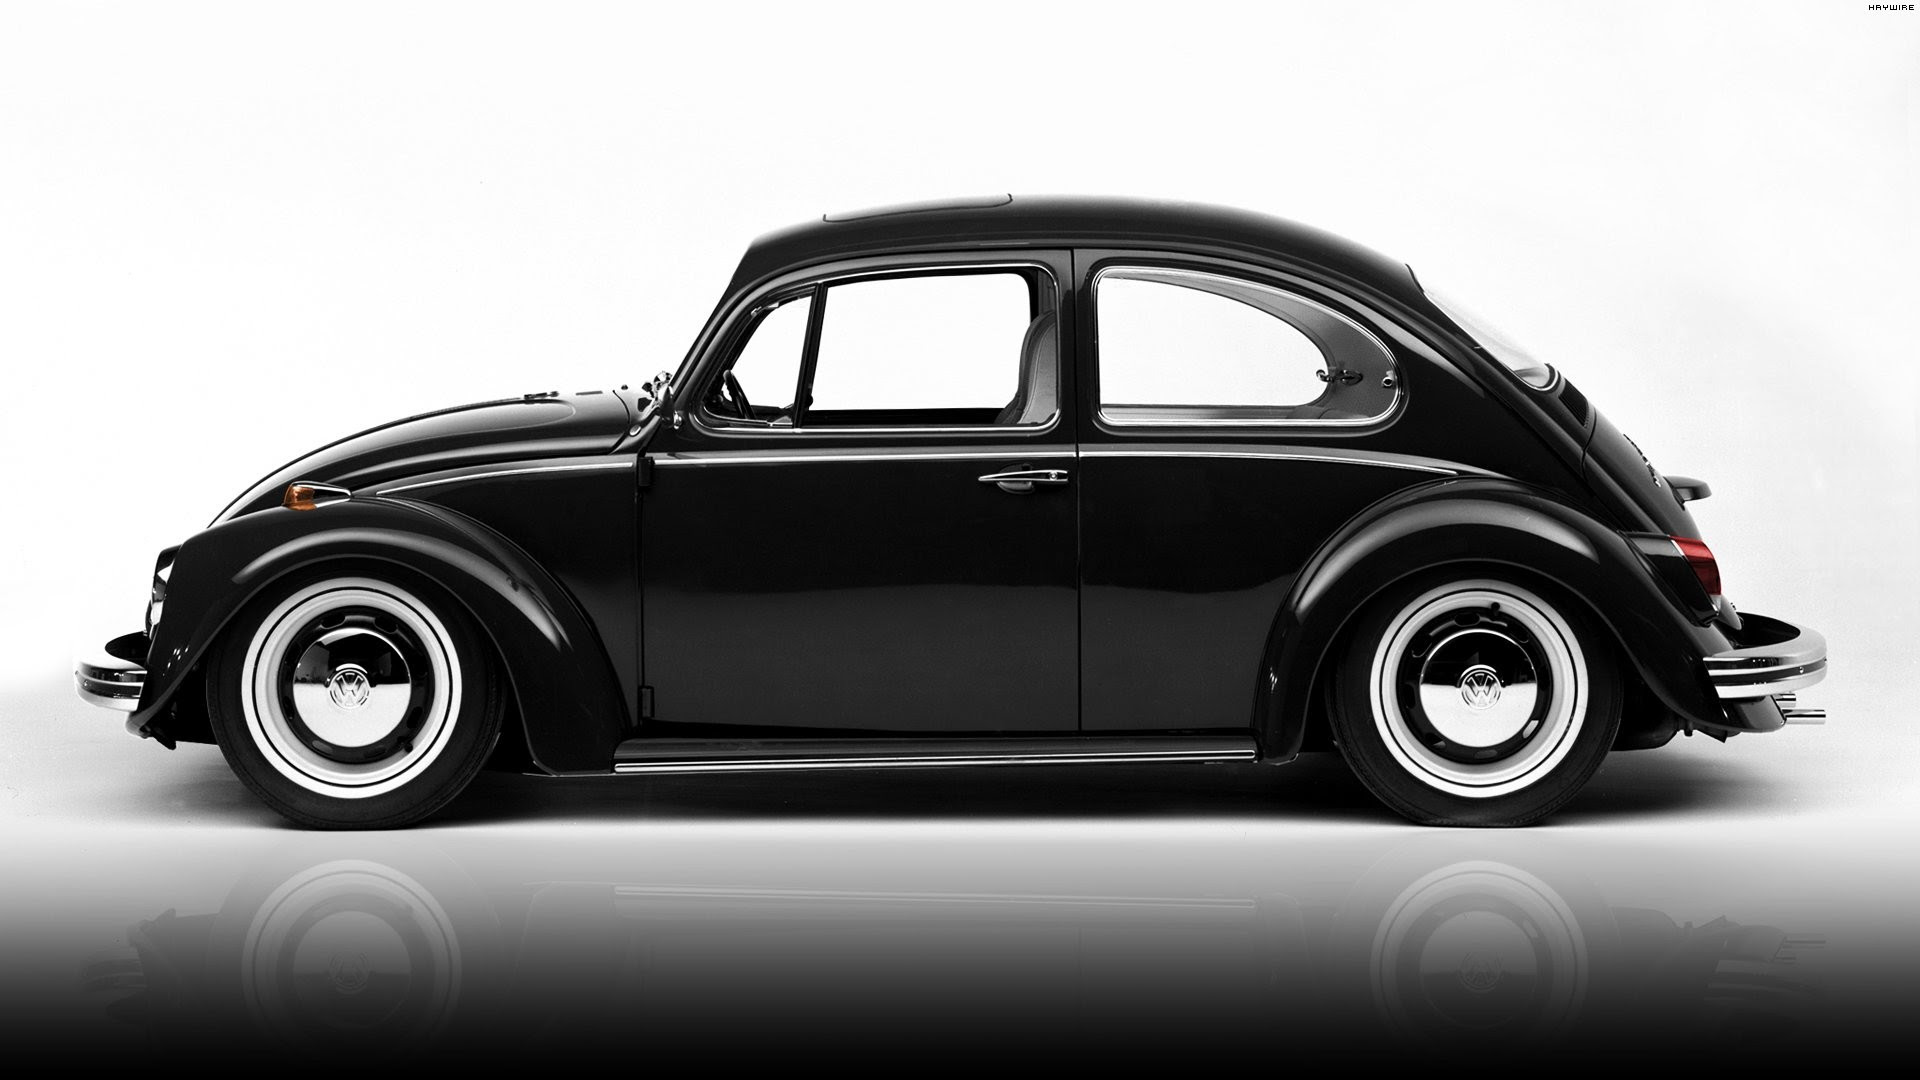 VW Beetle Wallpaper HD (72+ images)